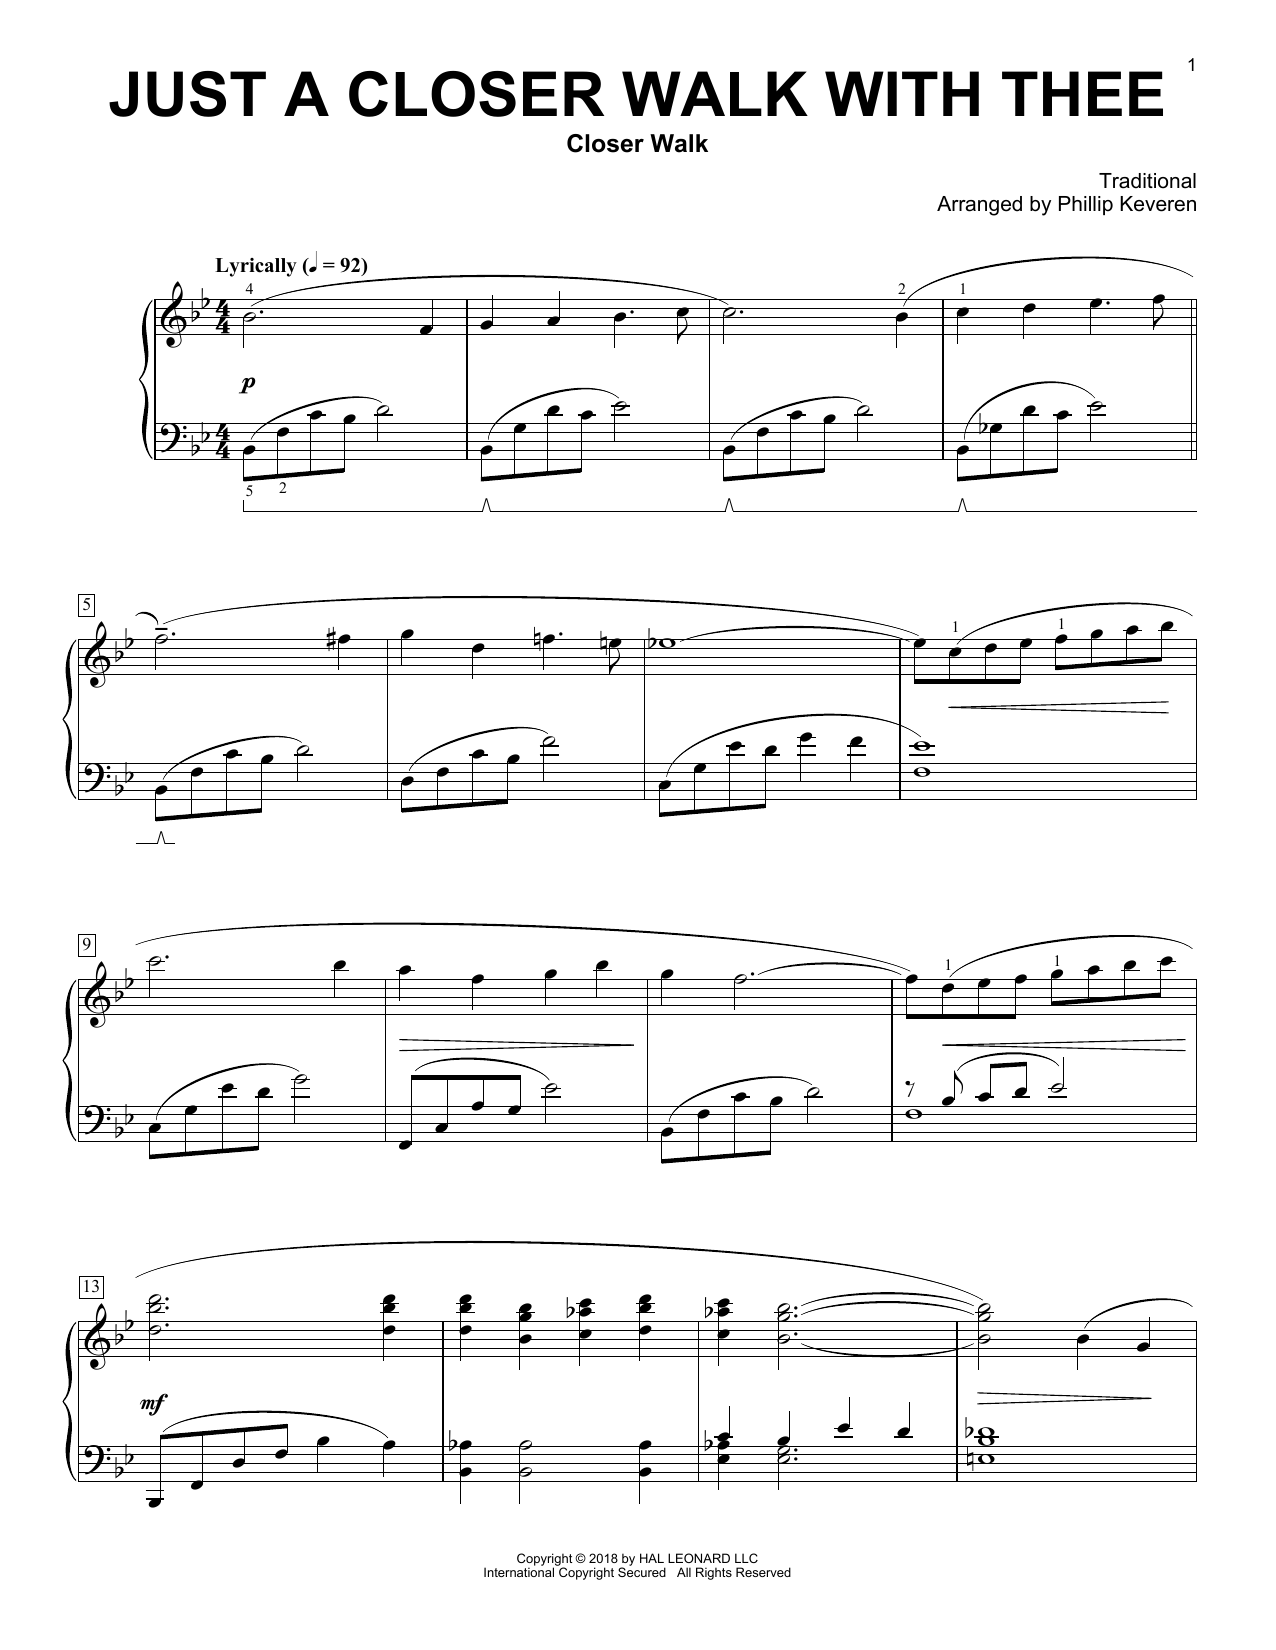 Kenneth Morris Just A Closer Walk With Thee [Classical version] (arr. Phillip Keveren) sheet music notes and chords. Download Printable PDF.